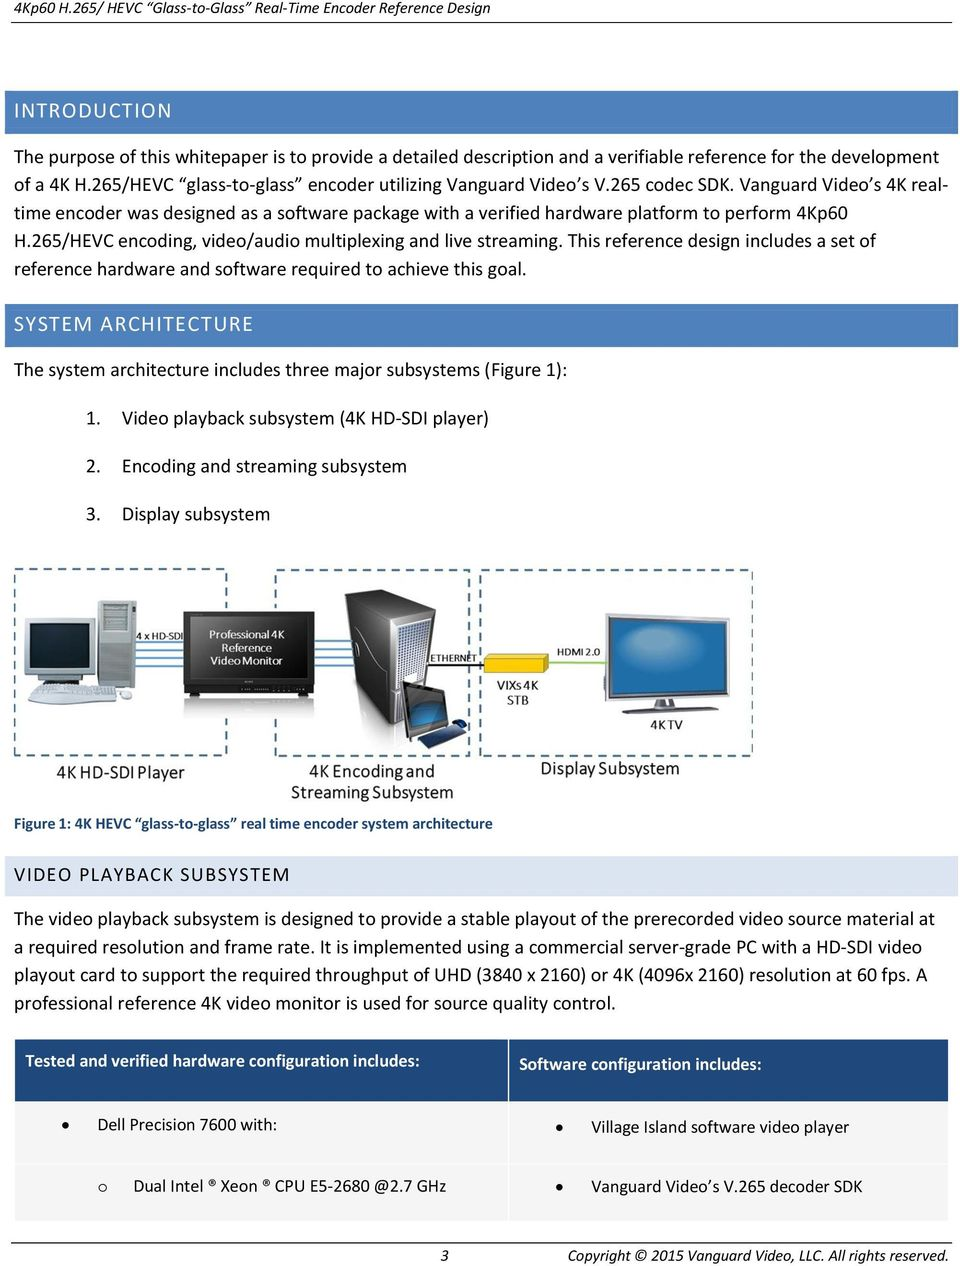 4Kp60 H 265/HEVC Glass-to-Glass Real-Time Encoder Reference Design - PDF